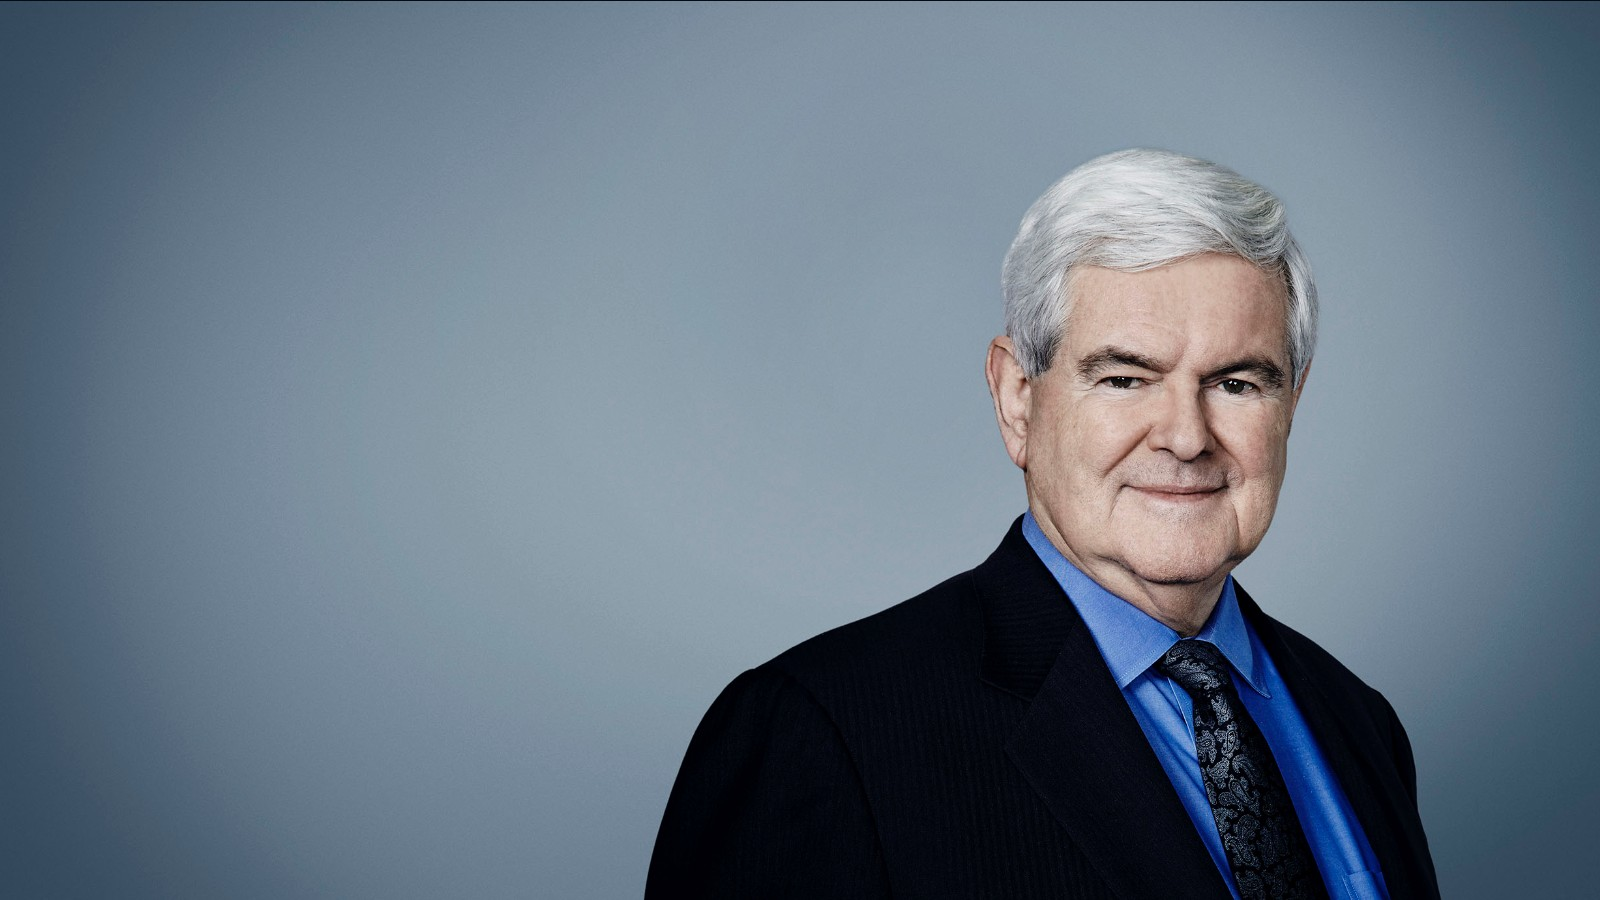 Newt gingrich phd thesis